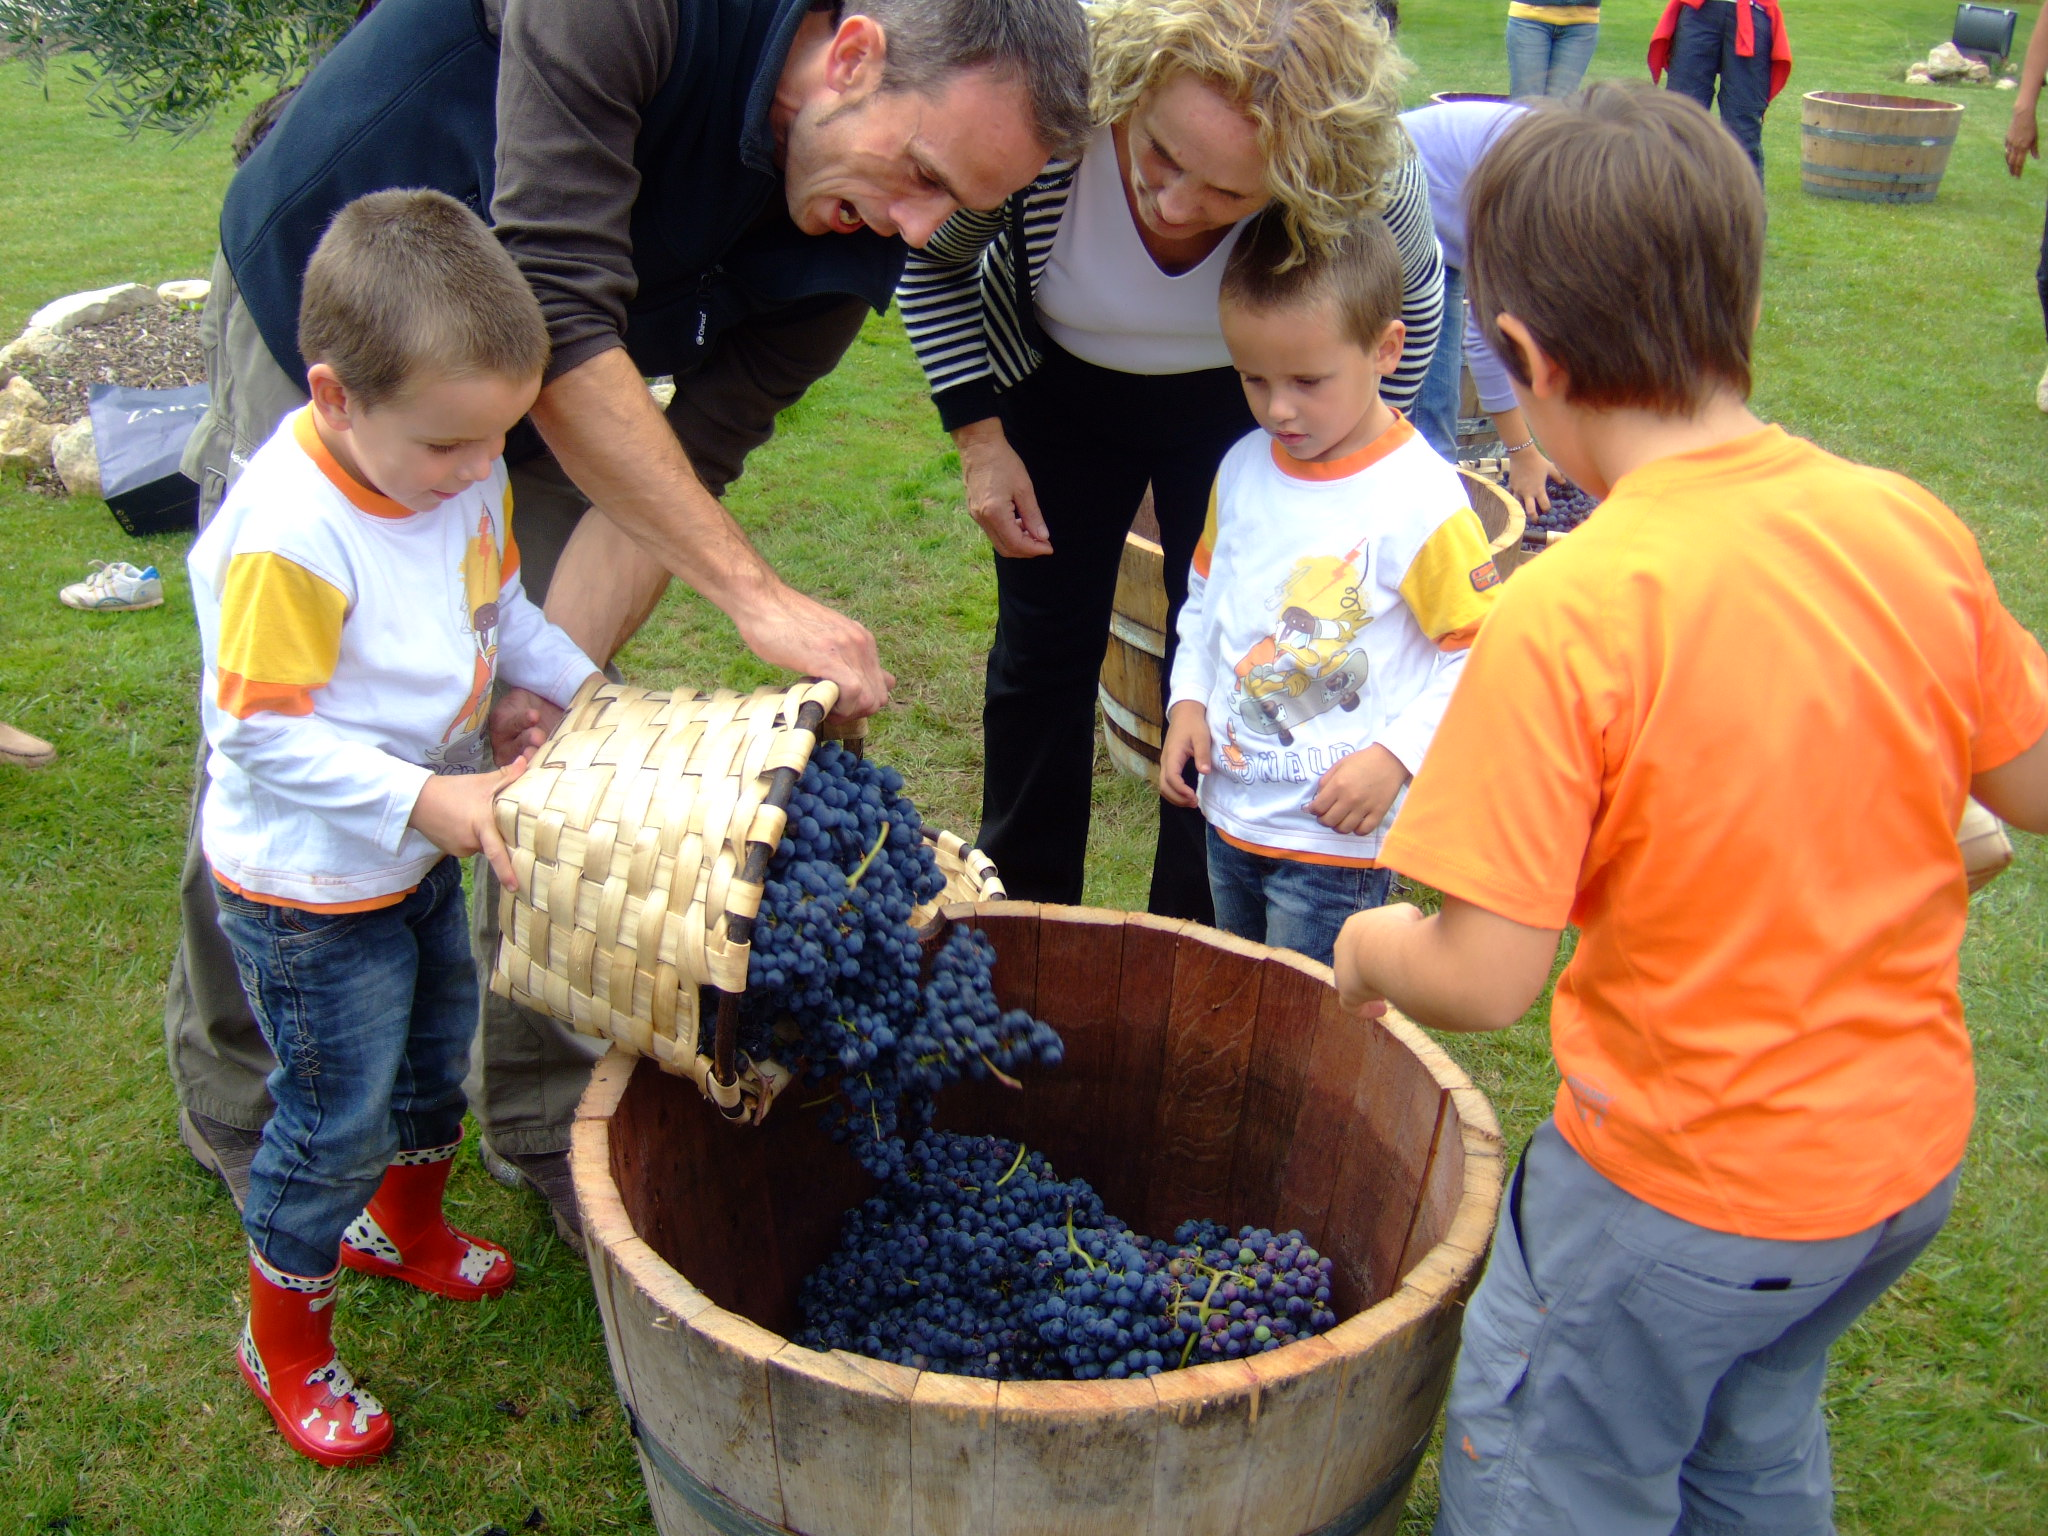 Wine tourism for kids